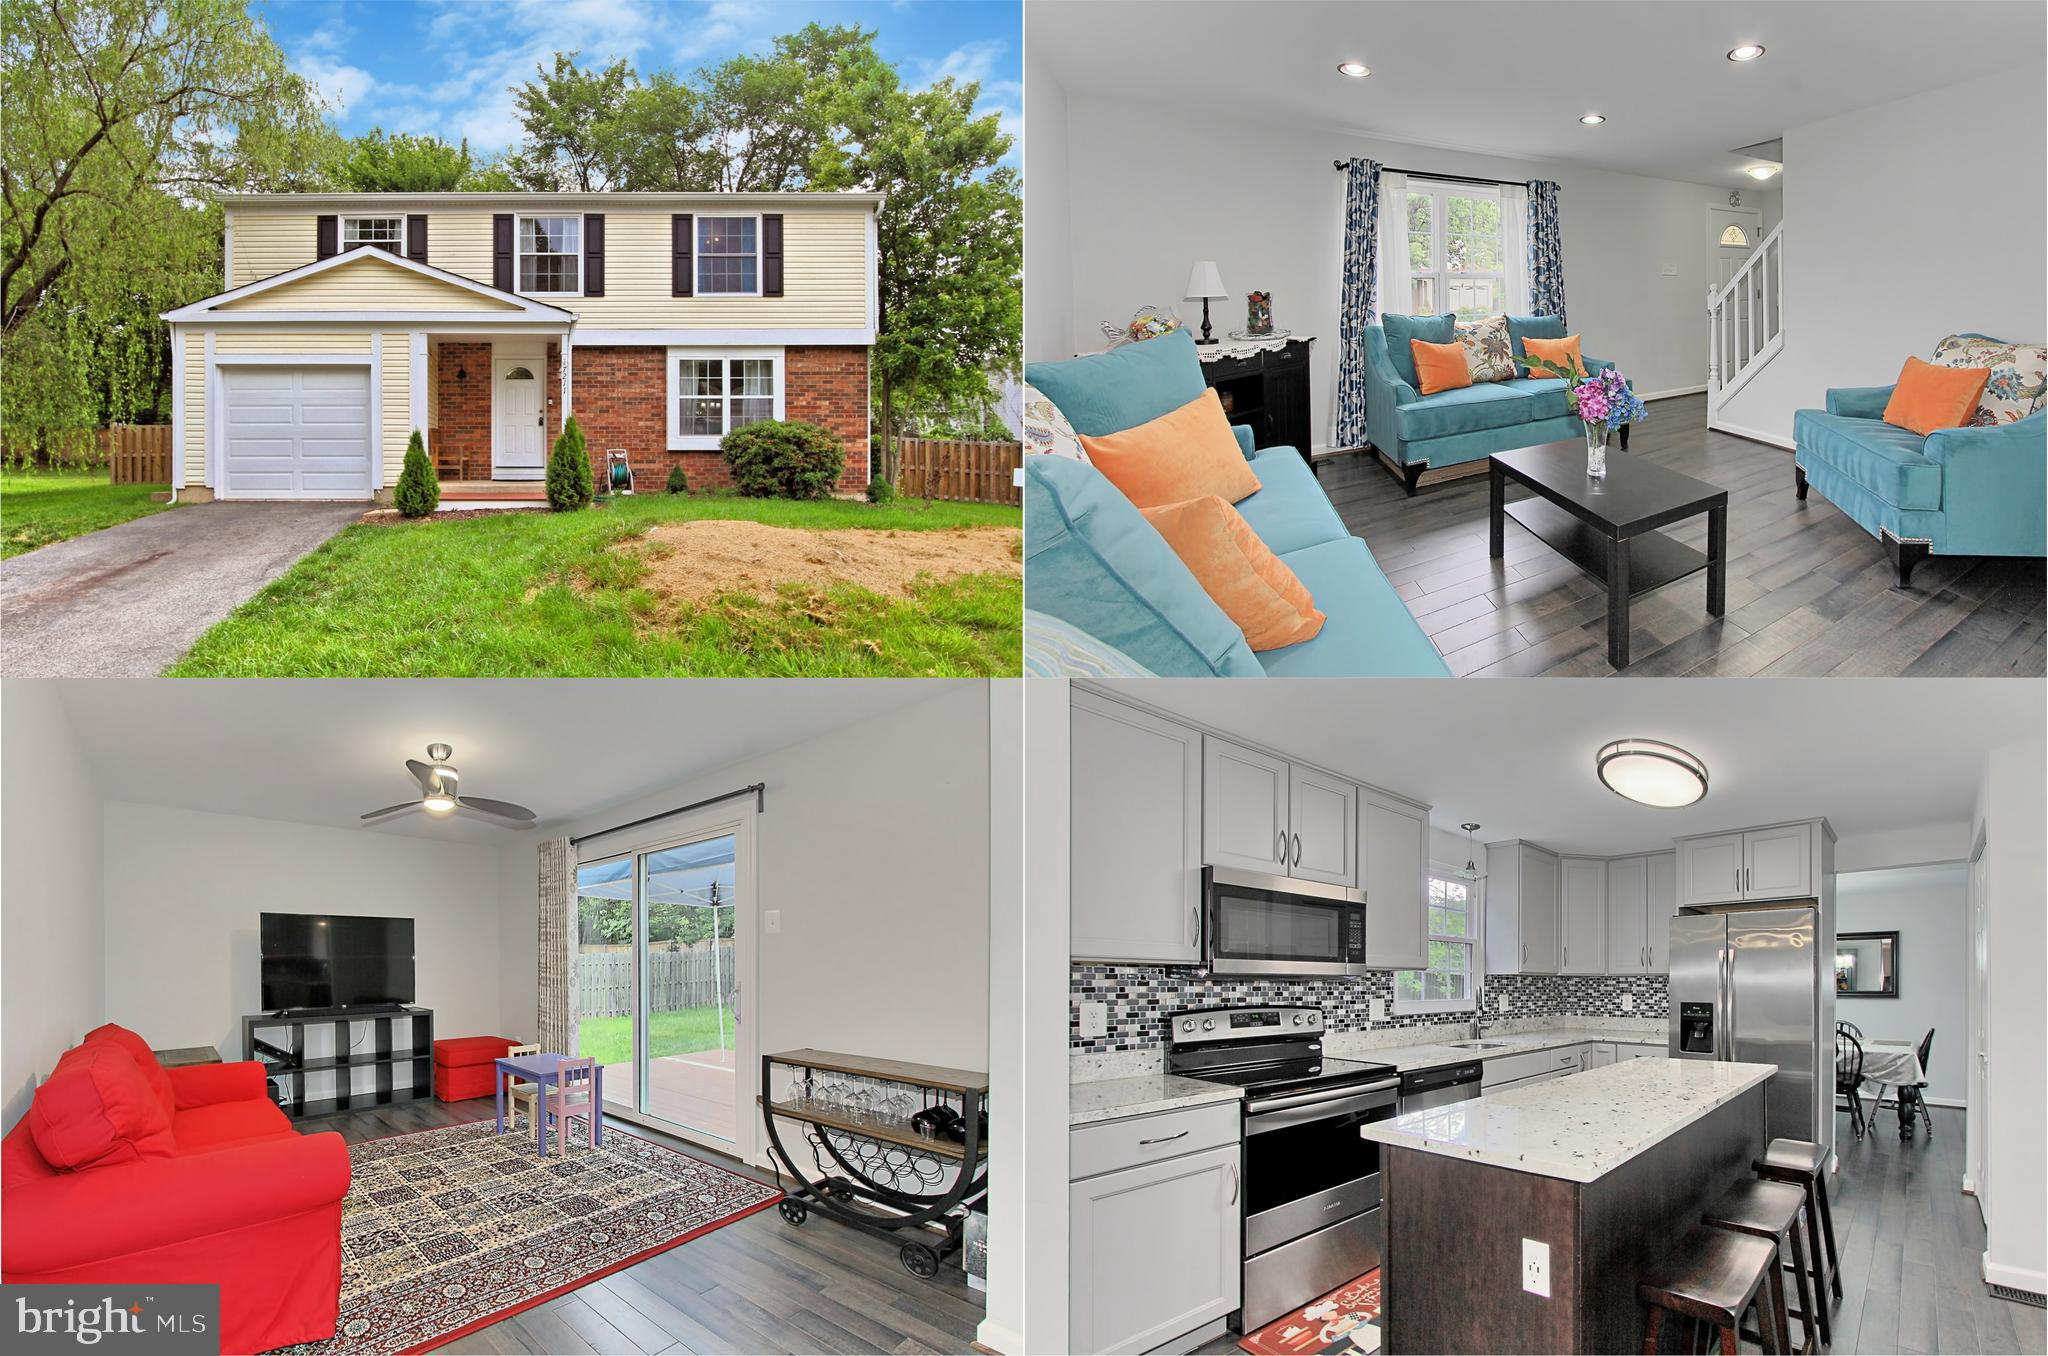 Nestled on a quiet street in the Bonniemill Acres neighborhood, this completely renovated home offer